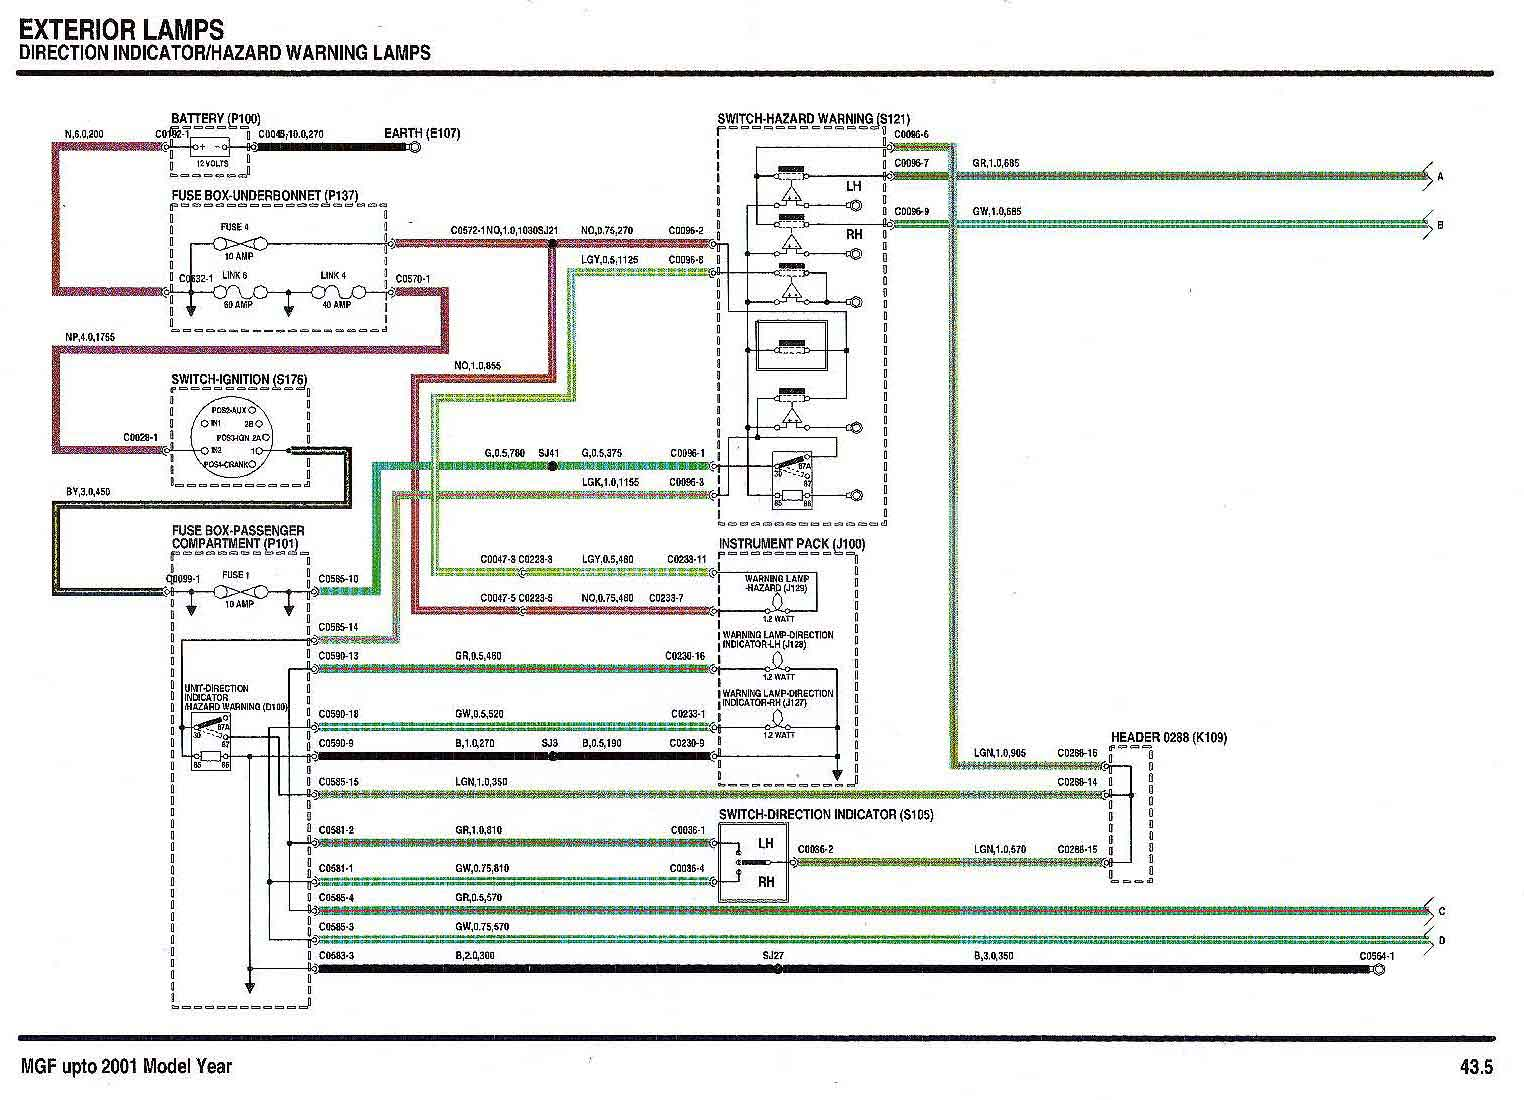 mgf fuse box diagram   20 wiring diagram images